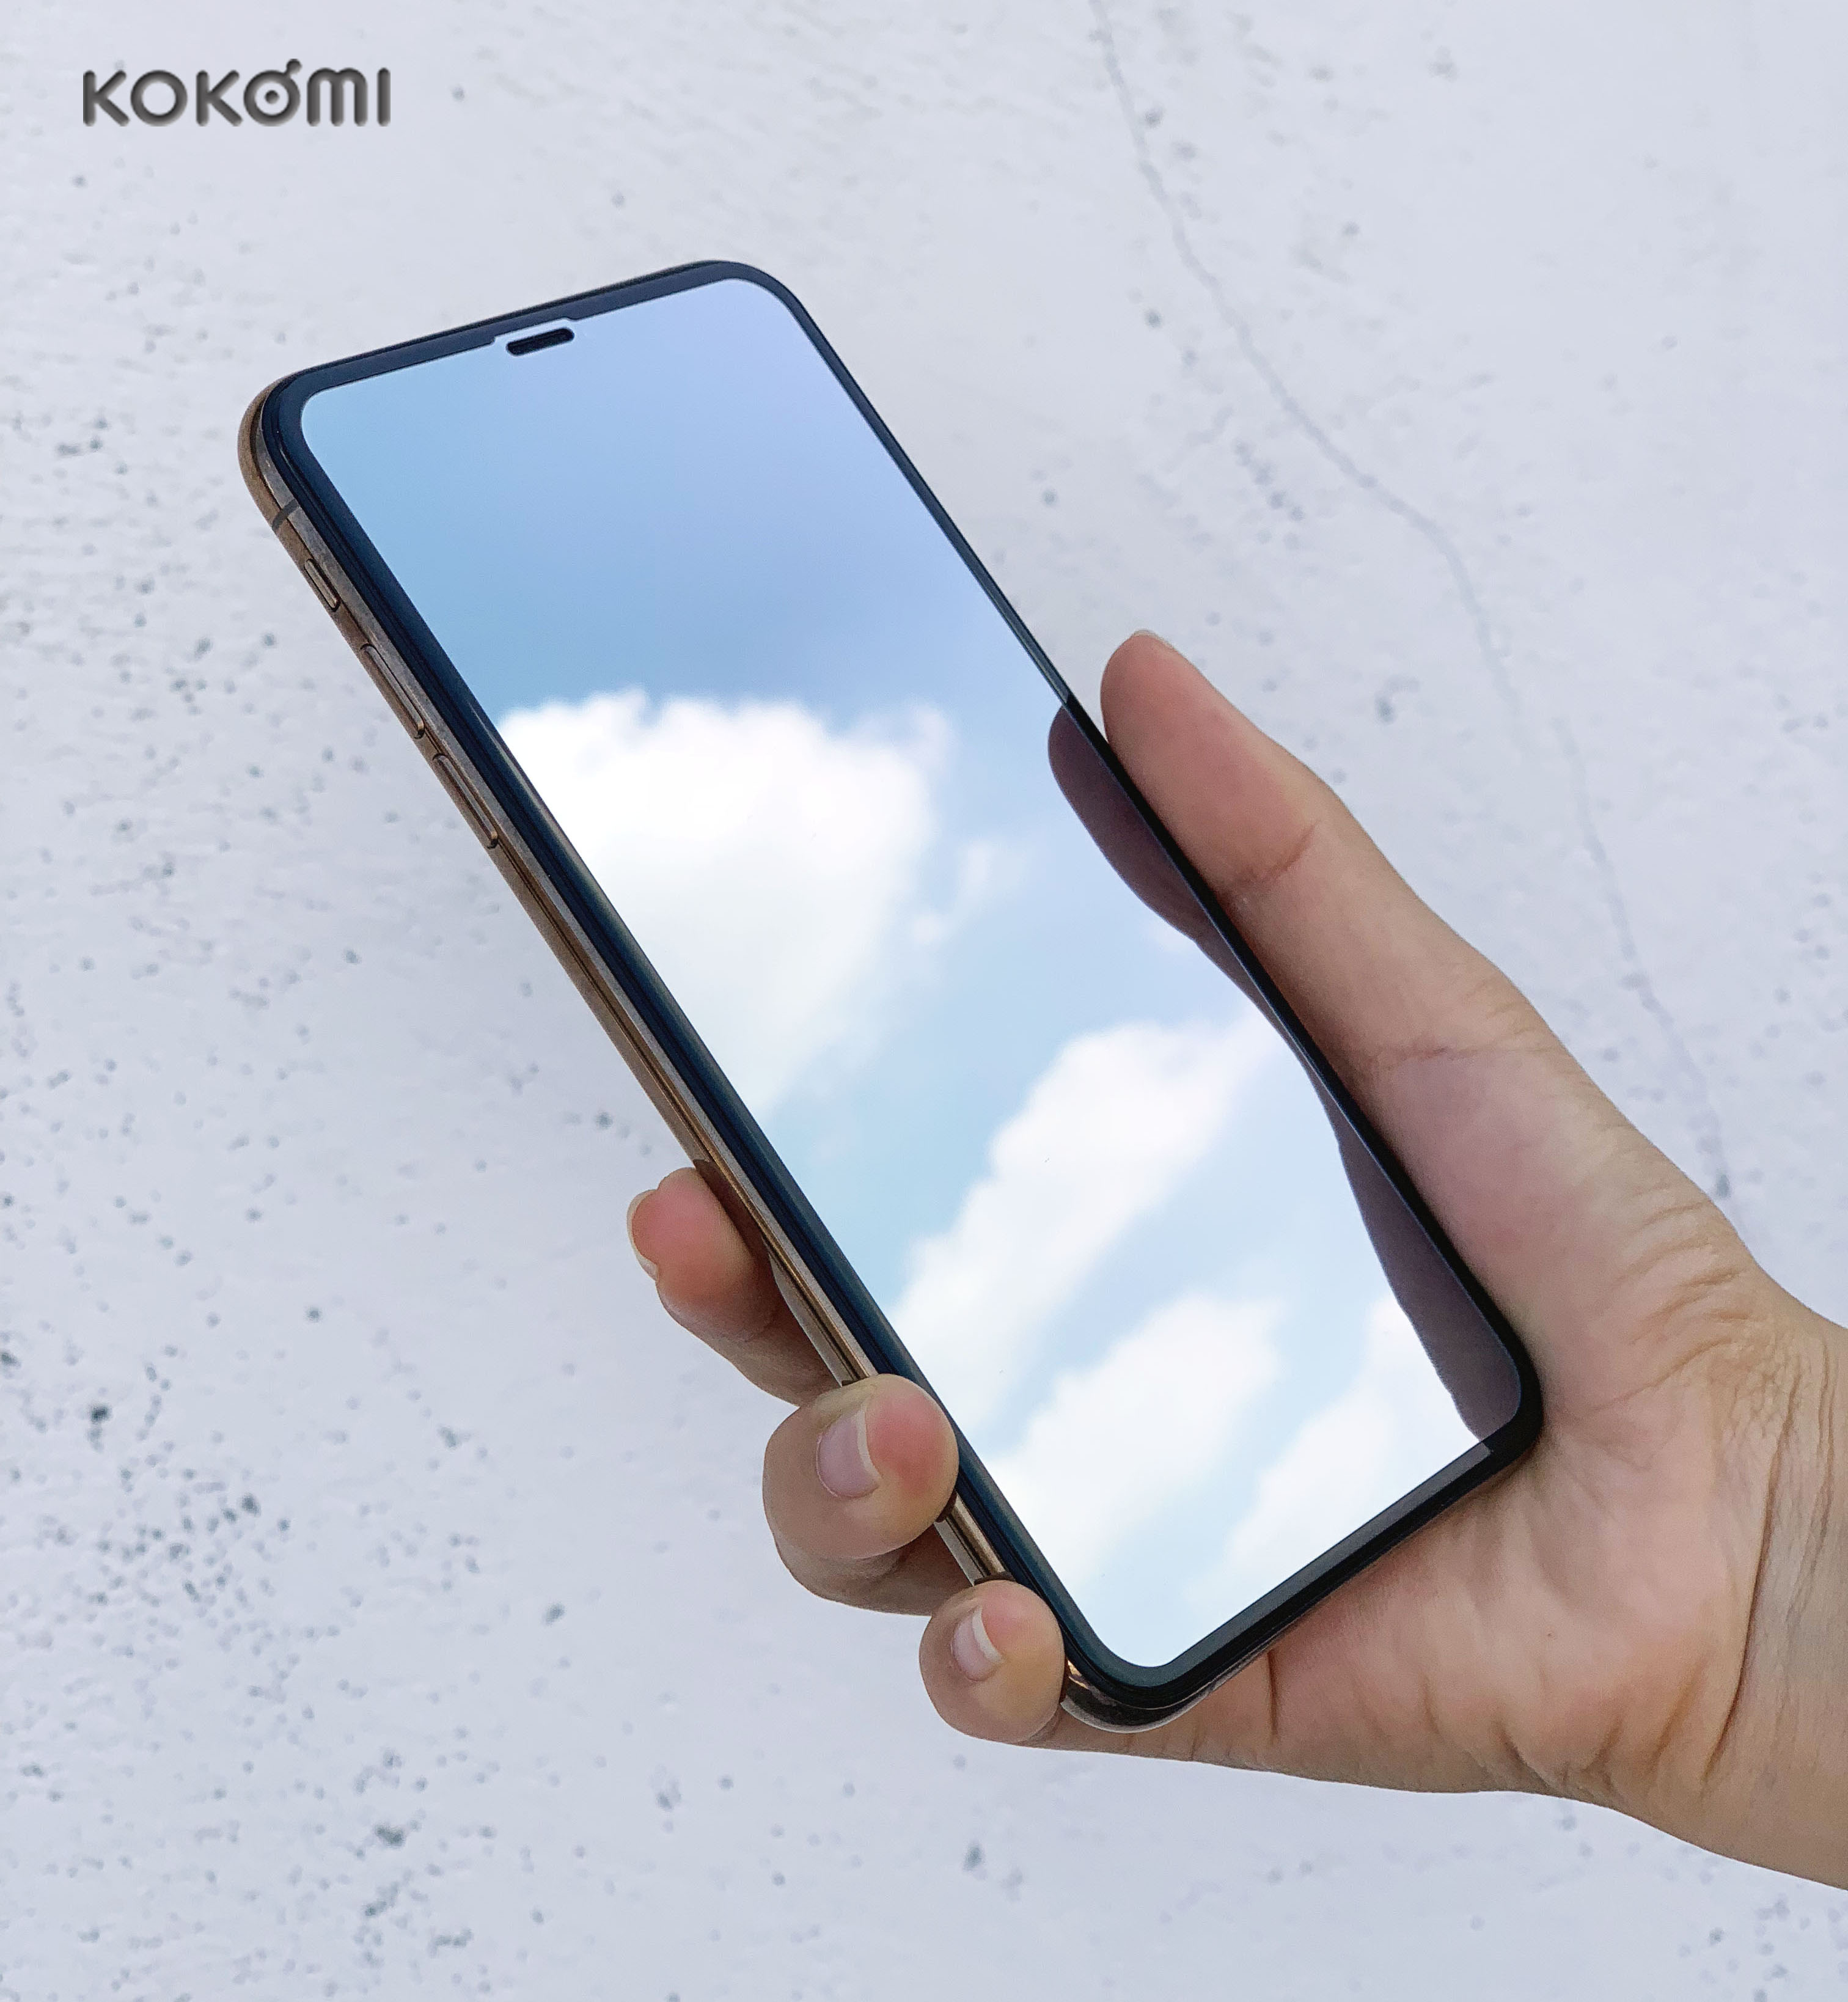 KOKOMI 3D curved mirror tempered glass high quality 3D glass screen protector for iphone фото